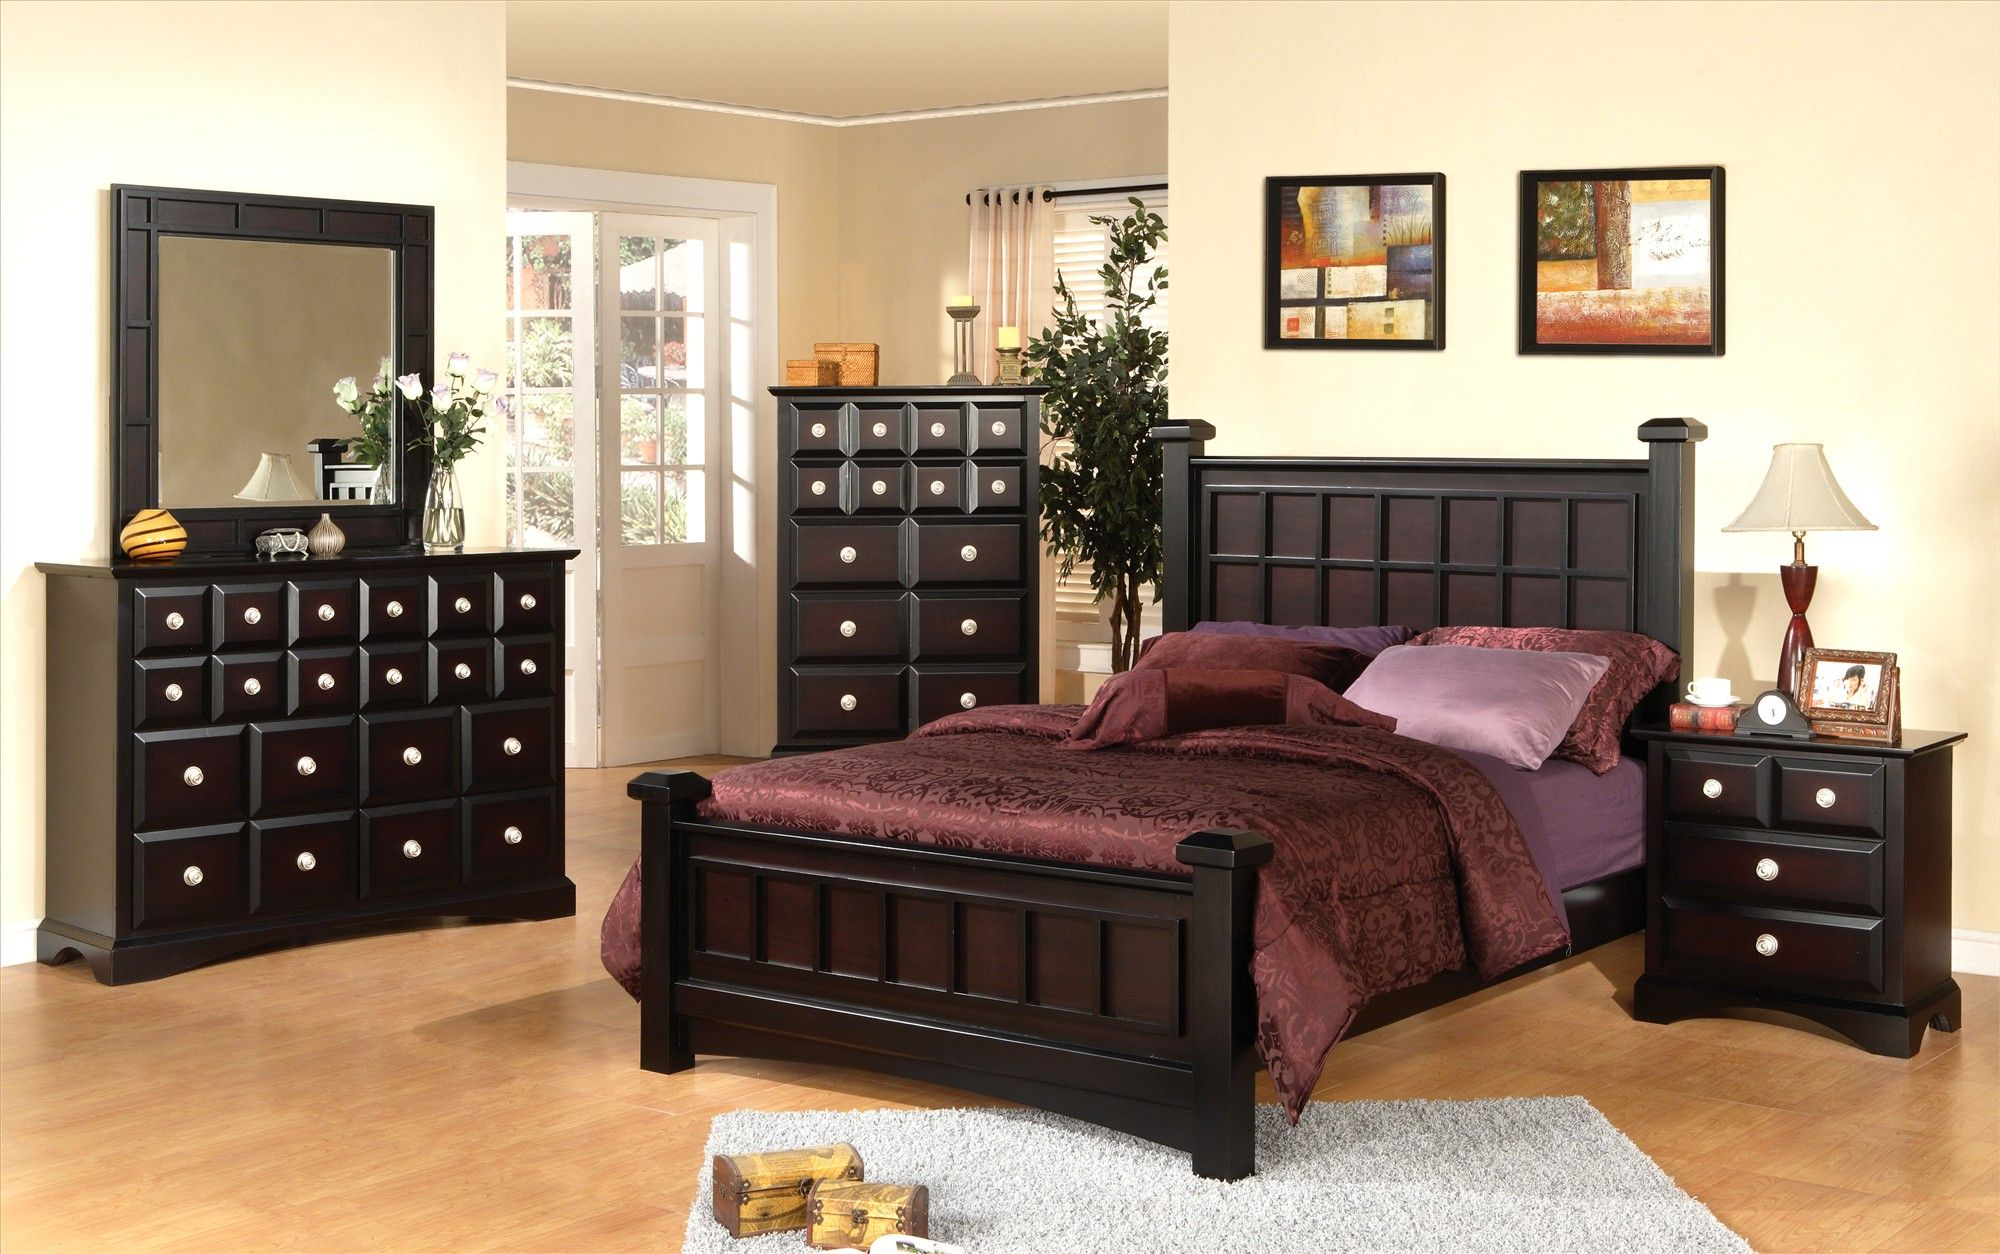 Interesting kathy ireland furniture for home furniture ideas lovely dark brown wooden bed and dresser by kathy ireland furniture on wooden floor with white